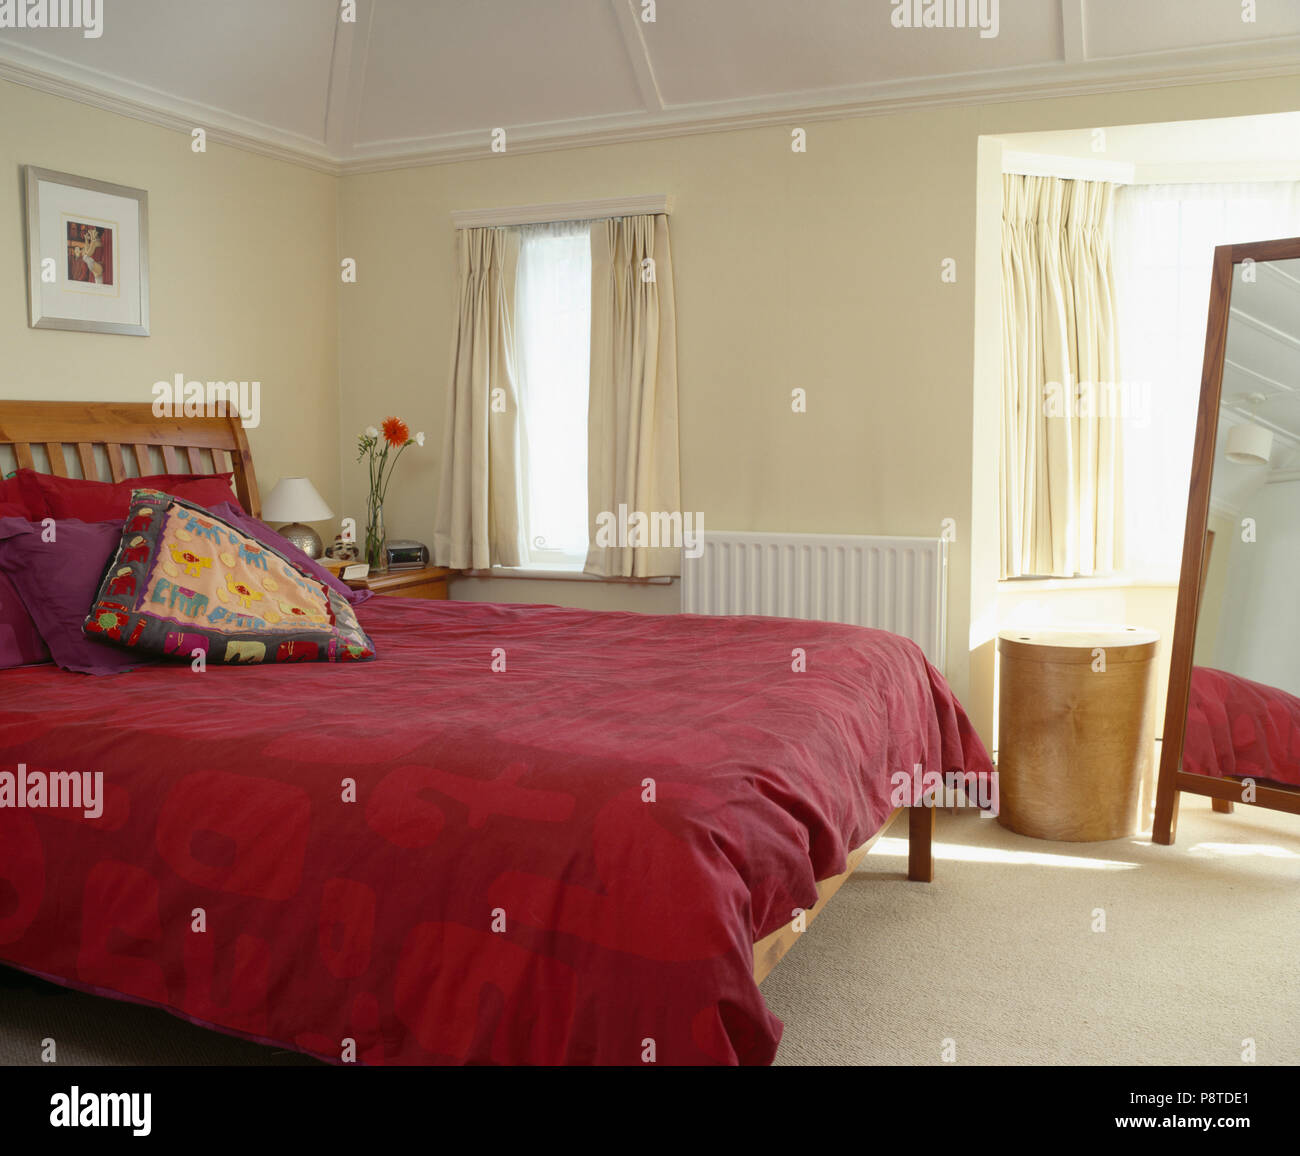 Red Duvet On Bed In Cream Bedroom With Cream Curtains Stock Photo Alamy